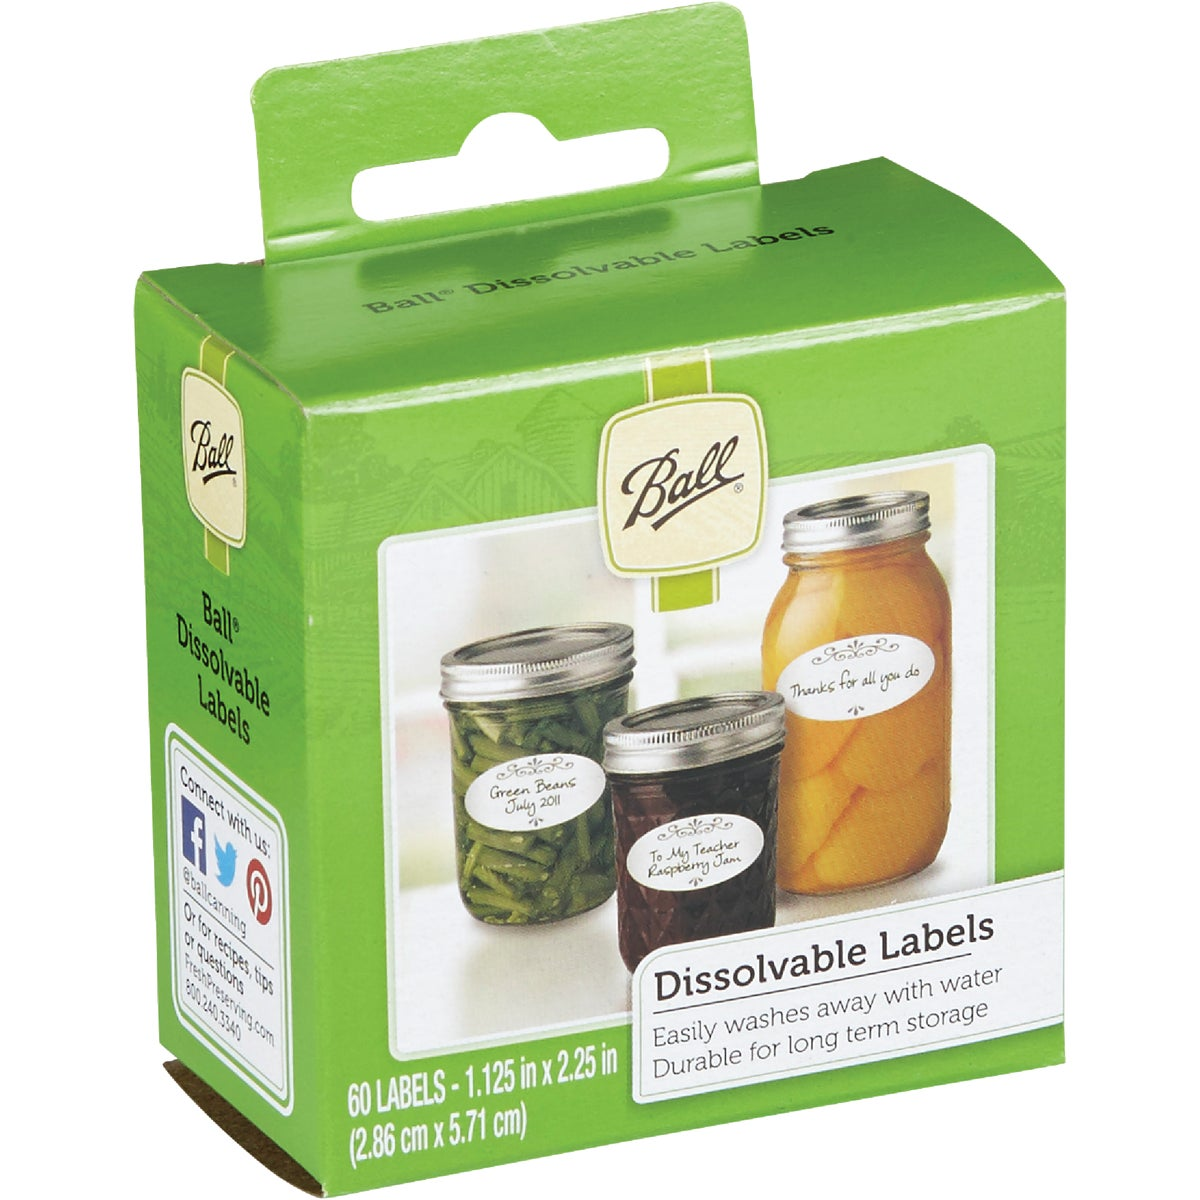 60CT DISSOLVABLE LABELS - 1440010734 by Jarden Home Brands